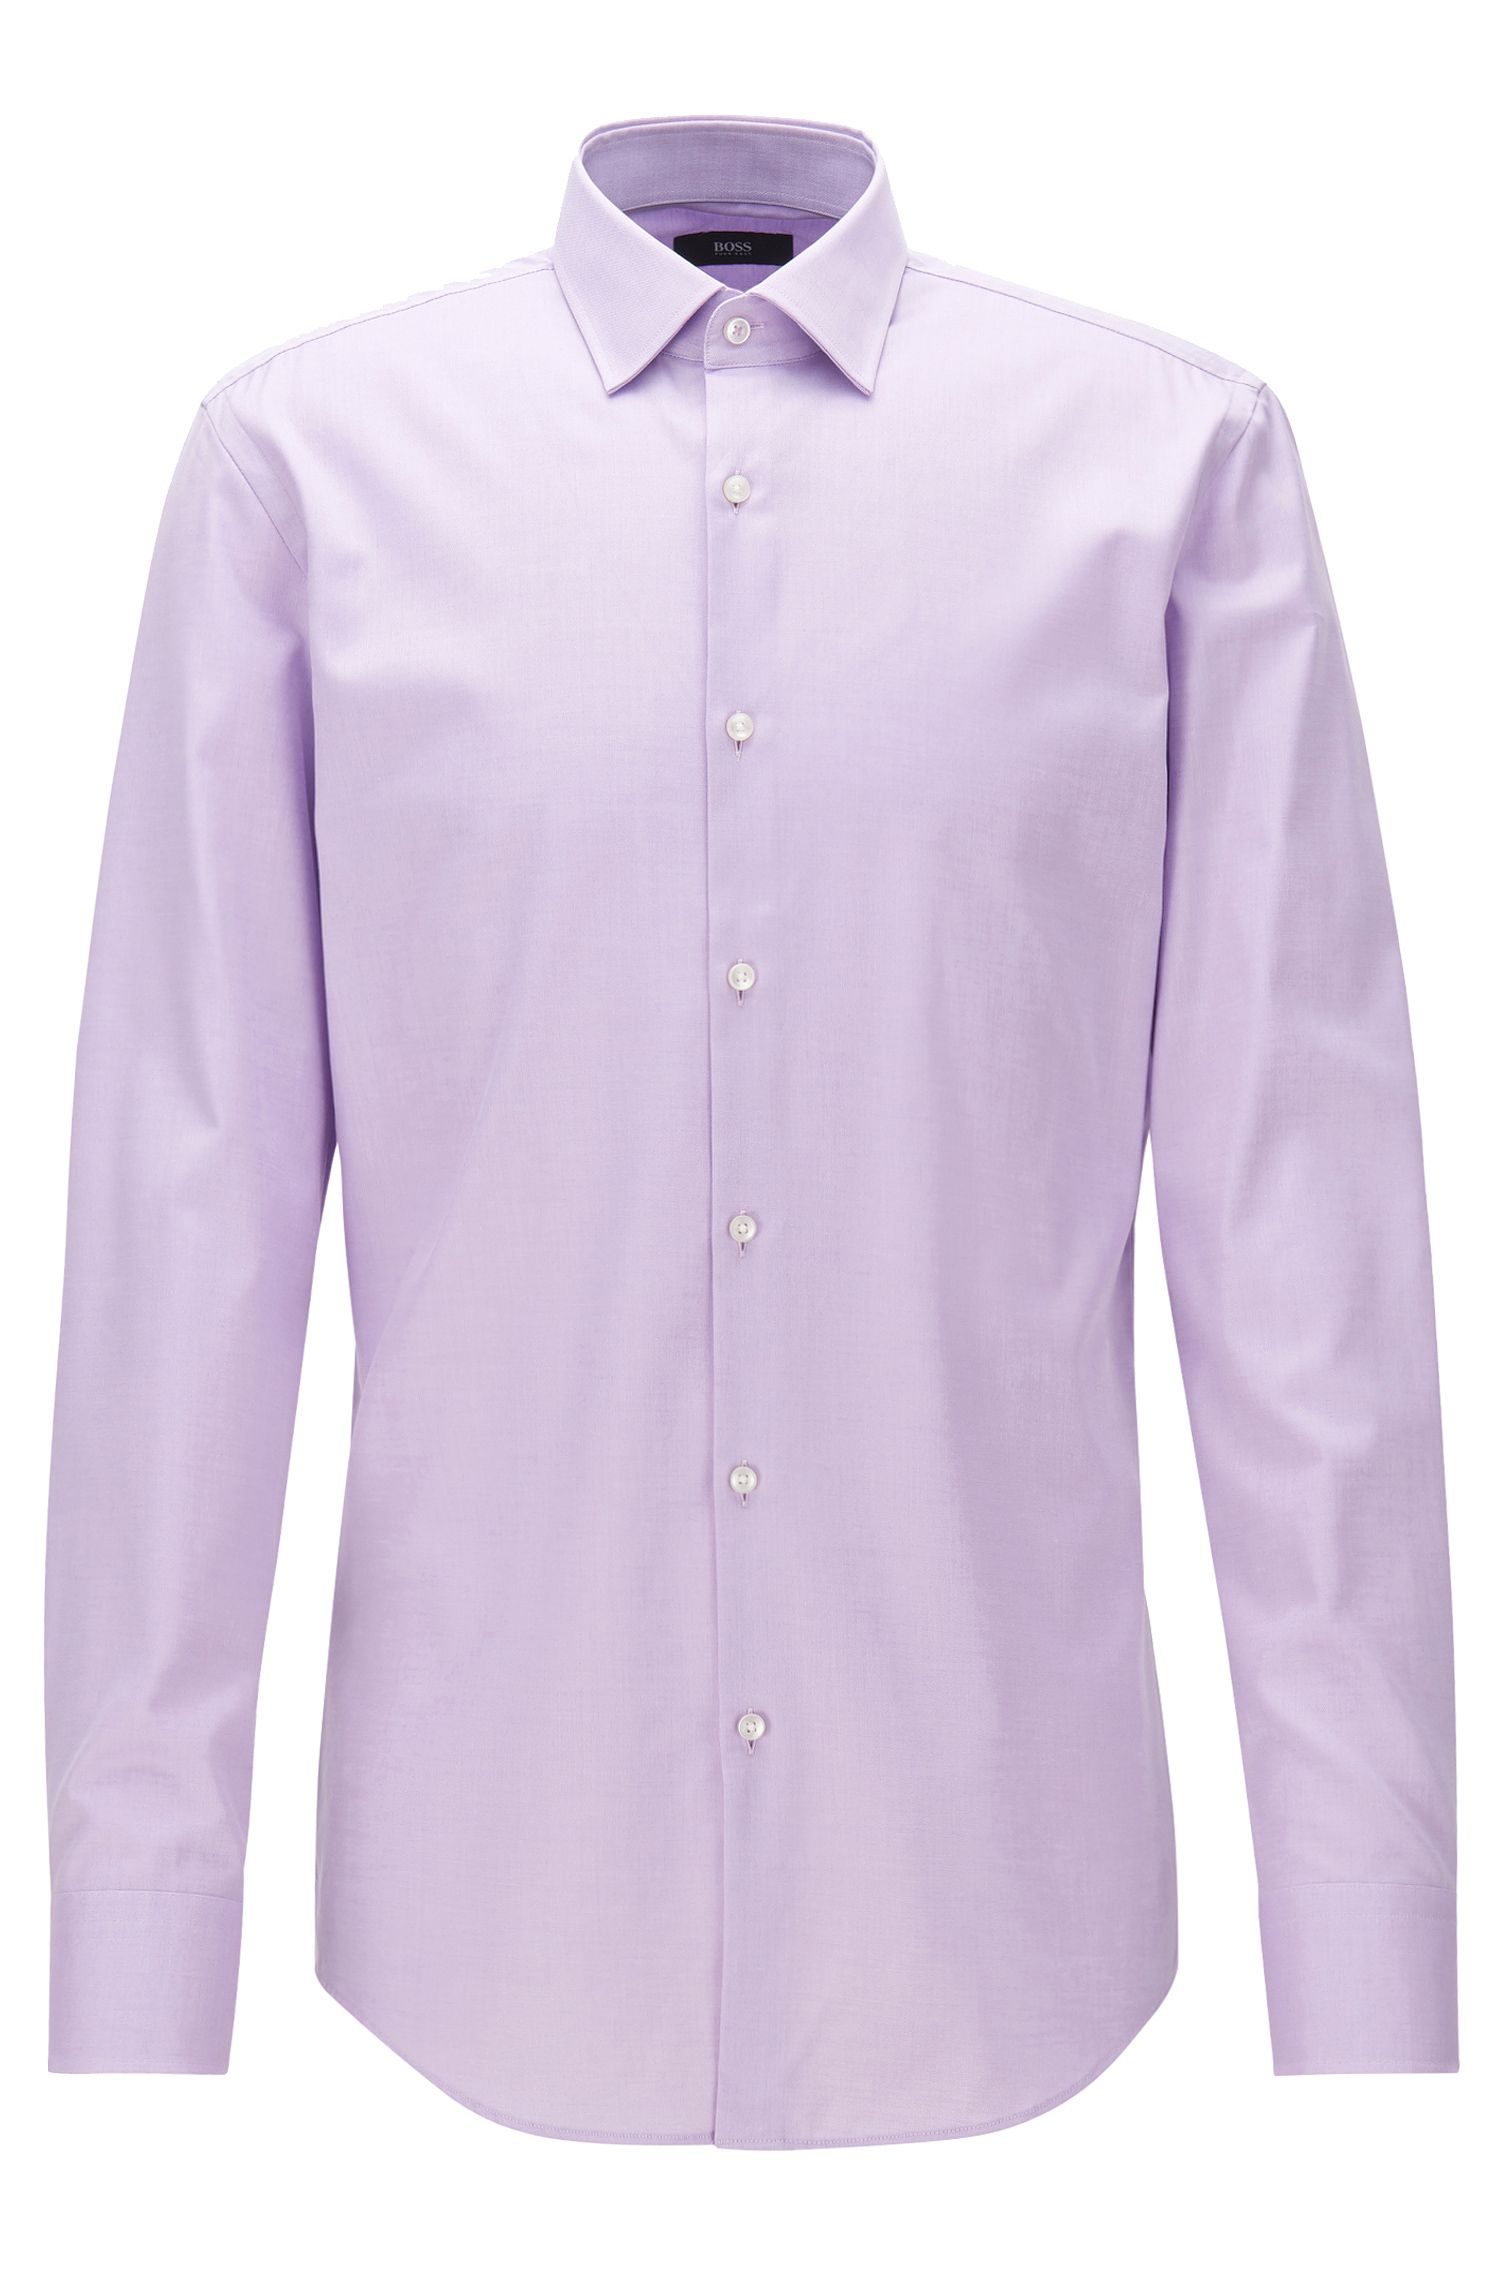 Cotton twill slim-fit shirt with contrast details